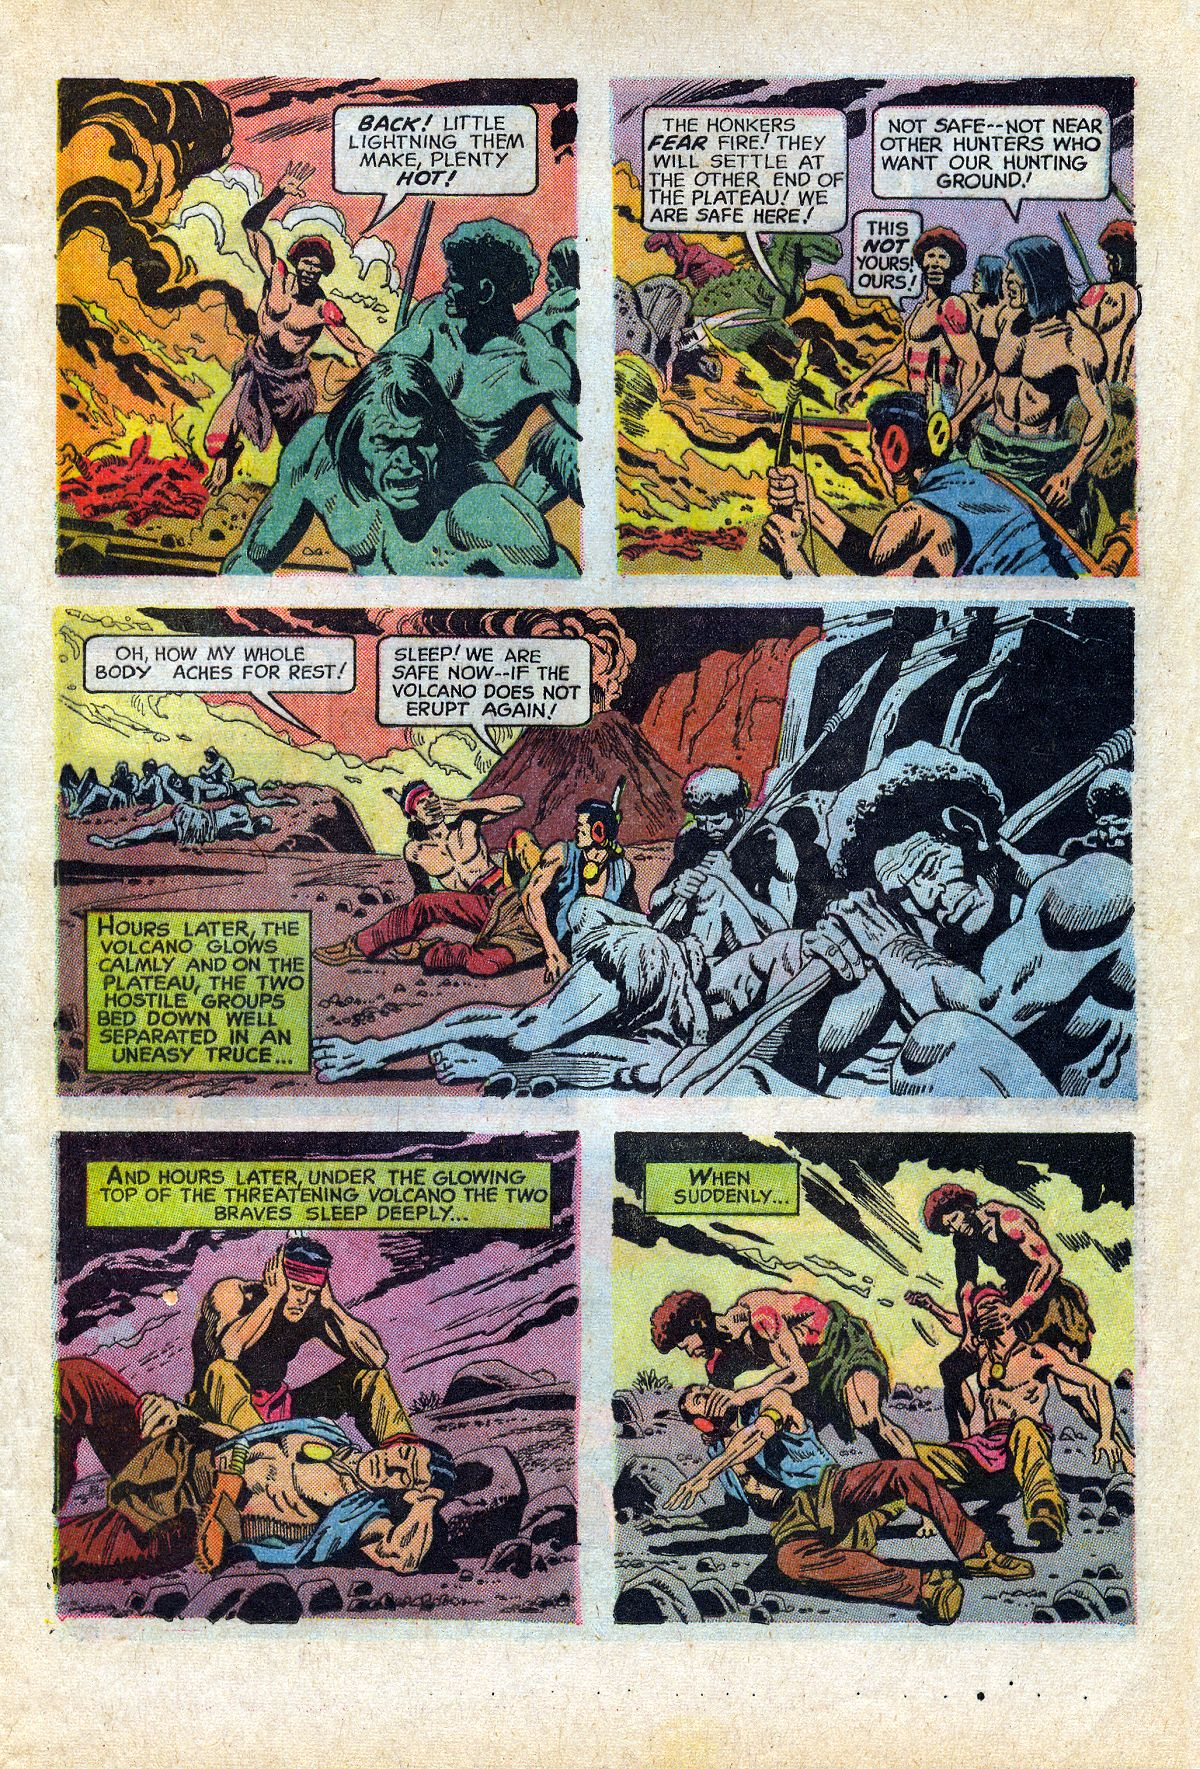 Read online Turok, Son of Stone comic -  Issue #66 - 25